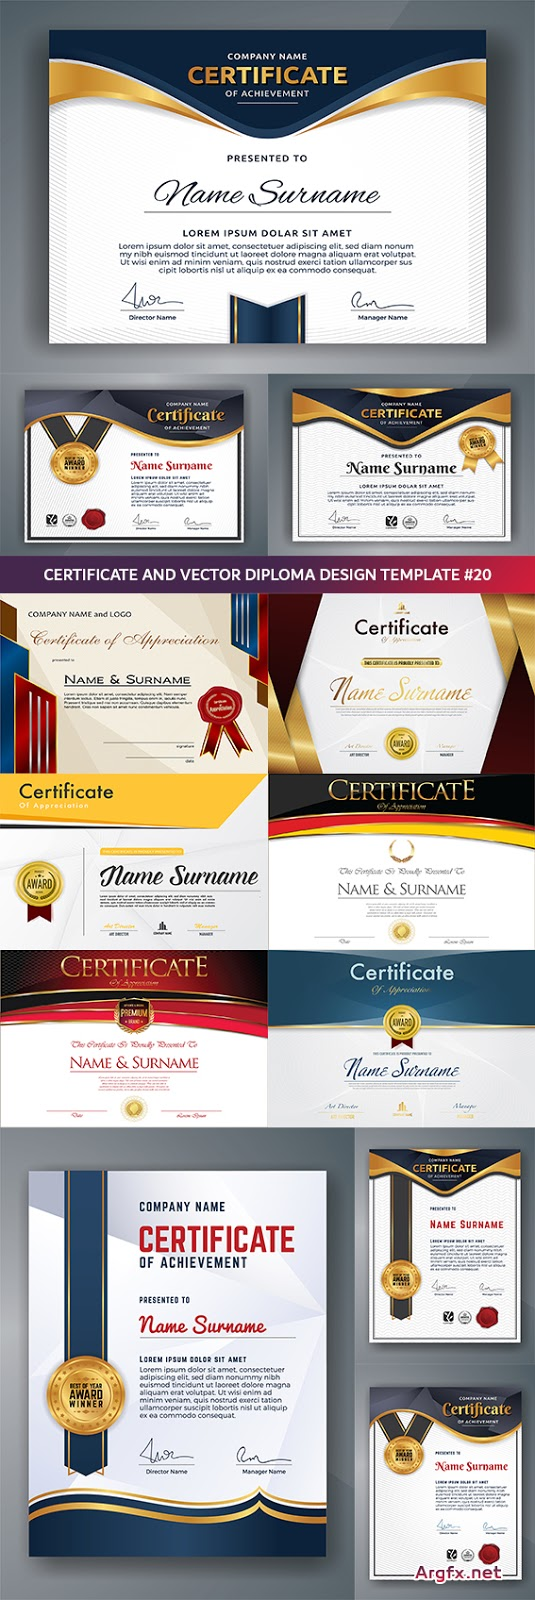 Certificate and vector diploma design template #20